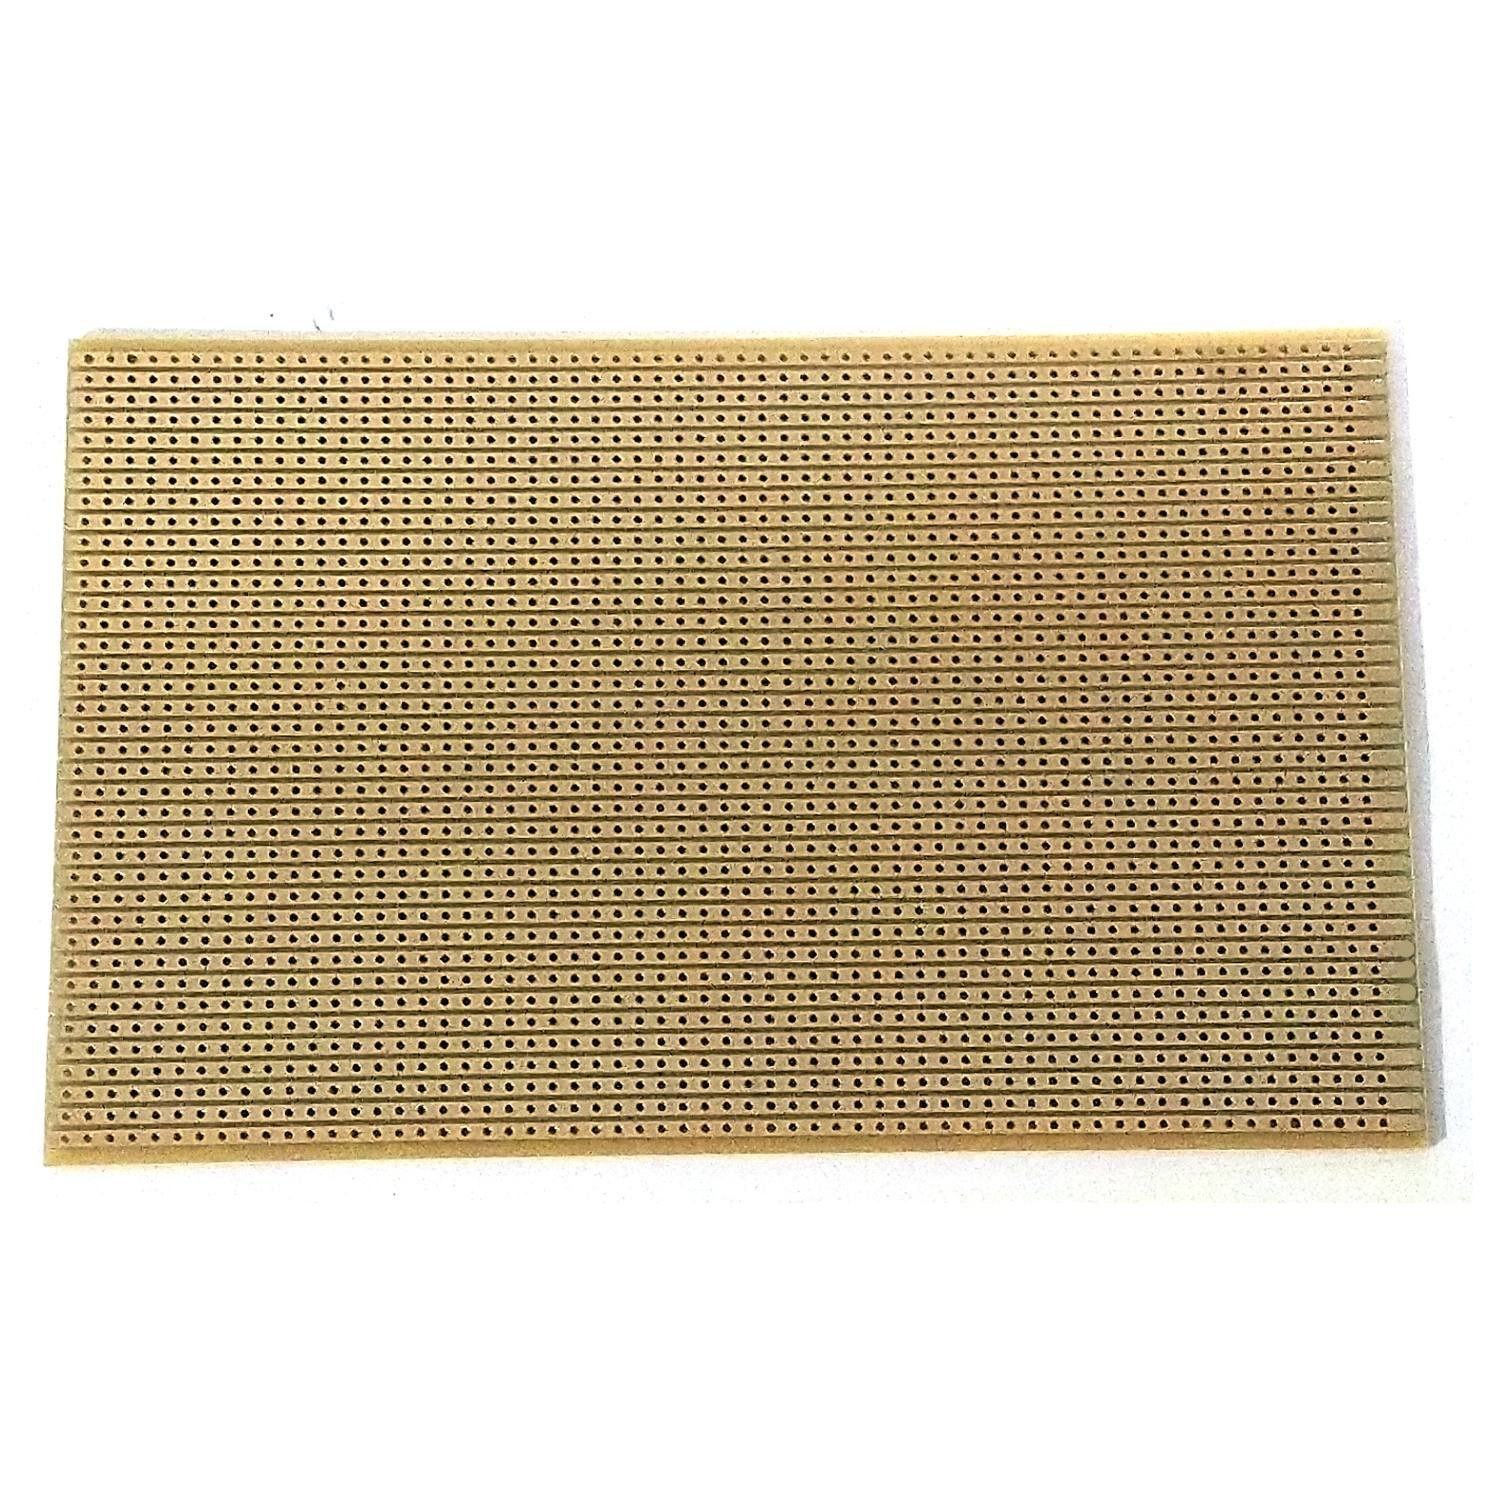 Copper stripboard 100 x 160mm 39 strip x 63 hole prototype vero board gold-plated tracks